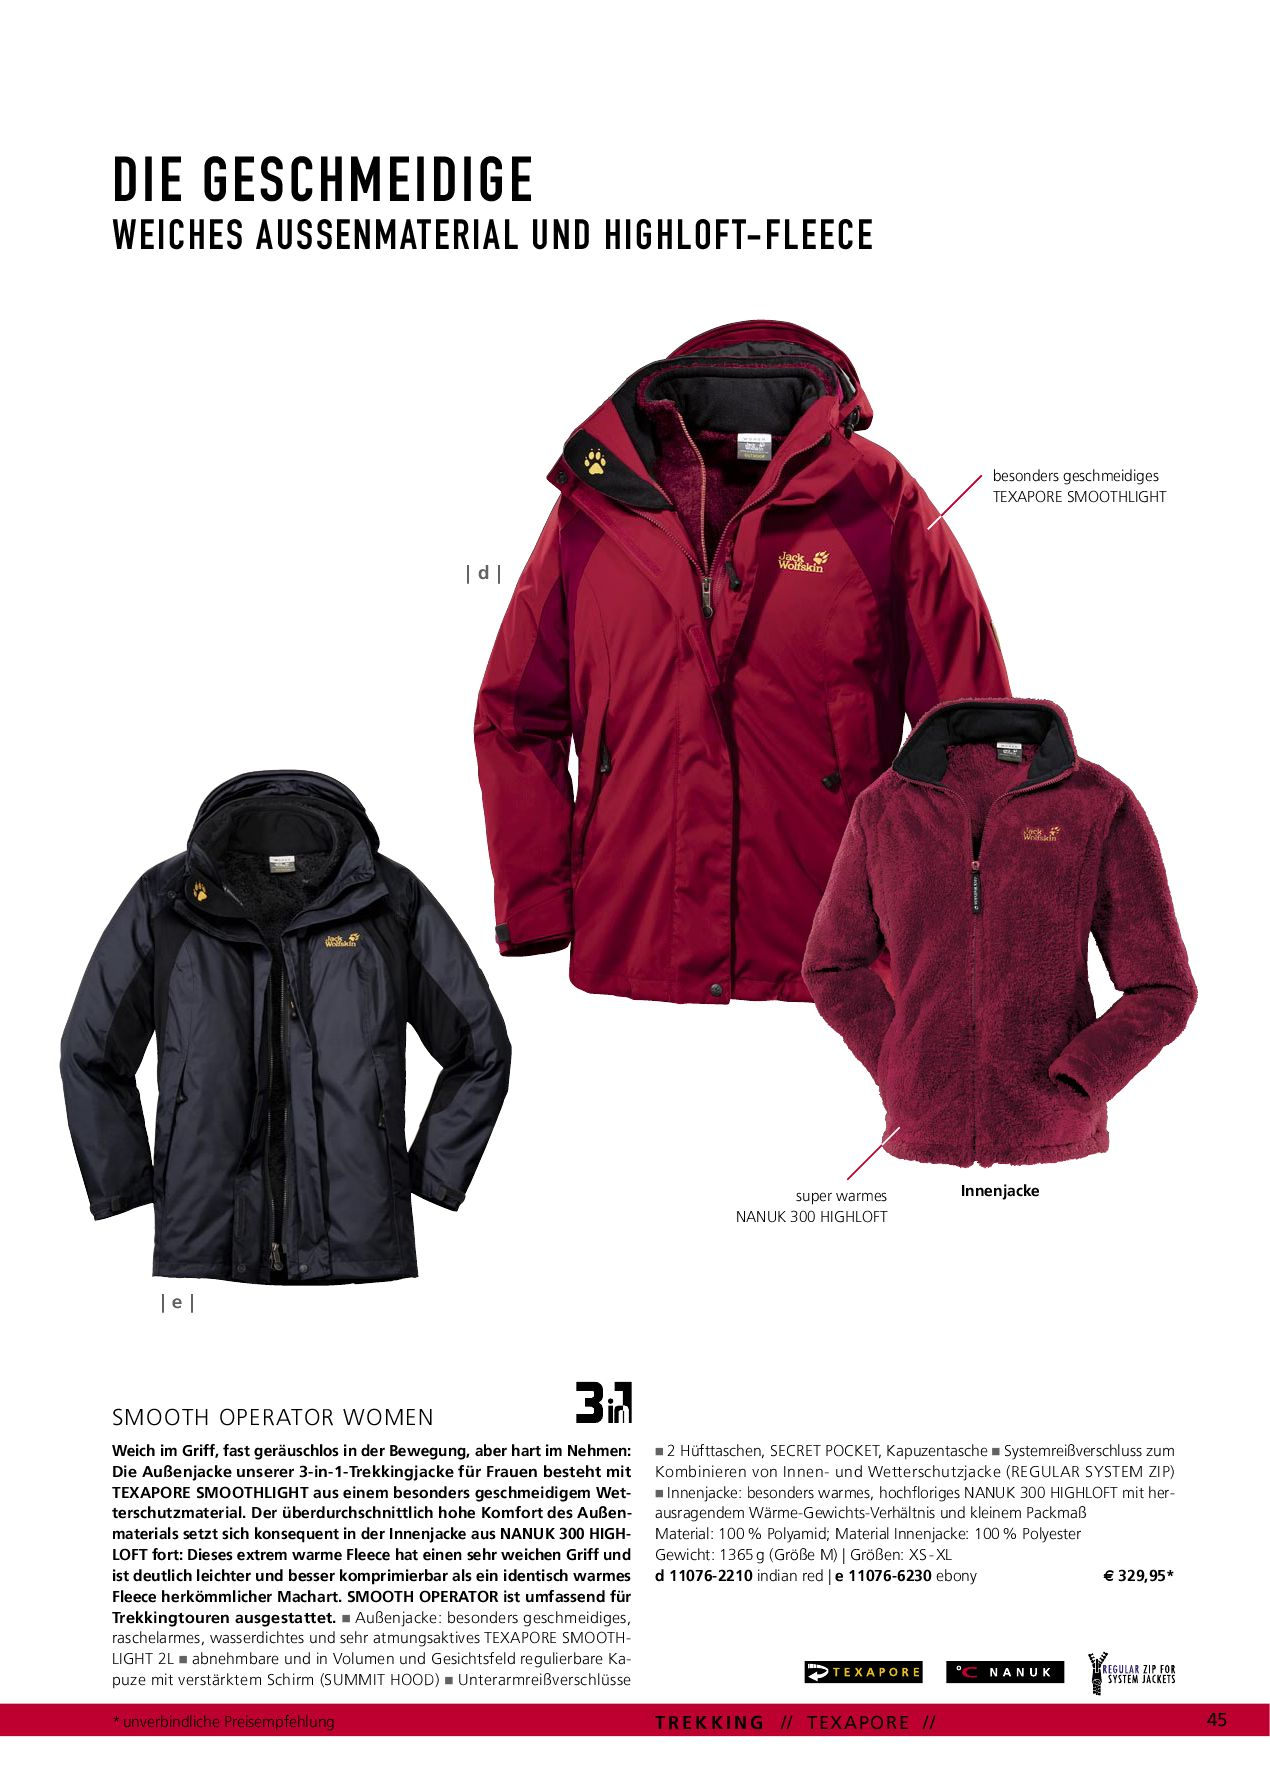 By 2009 Wolfskin Katalog Herbstwinter Jack Issuu xBoCed